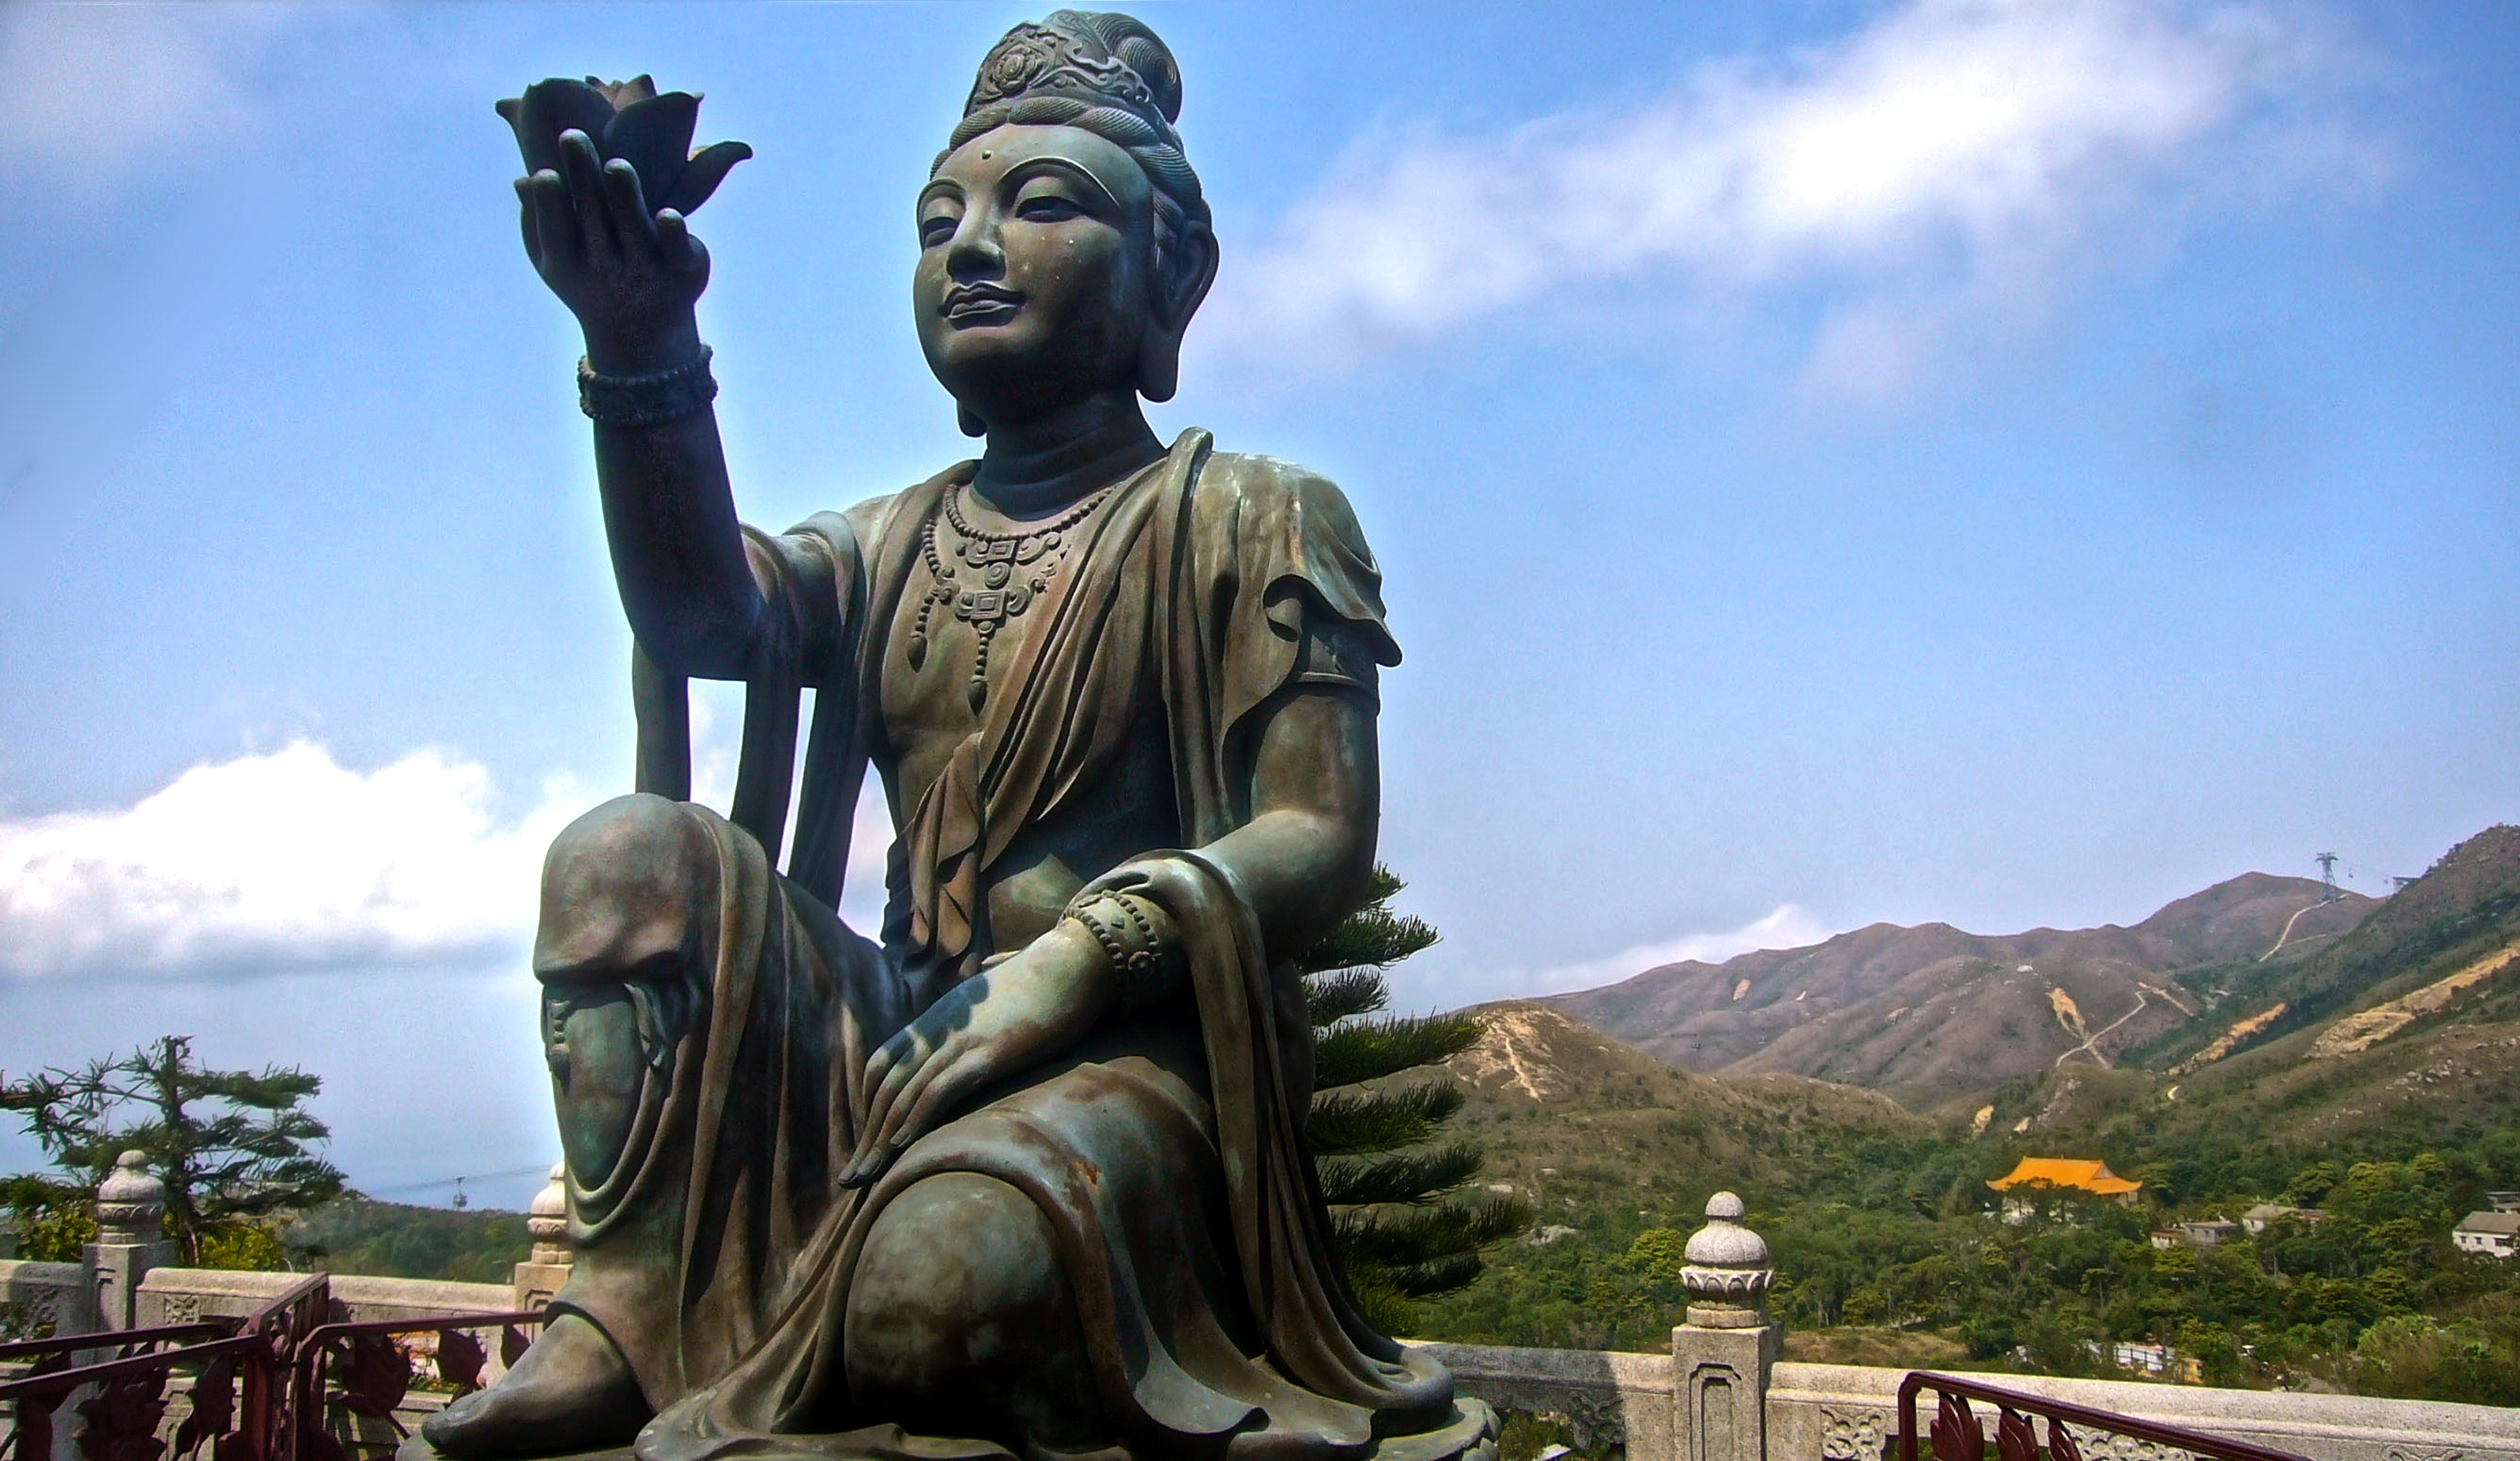 tian tan Hotels near or close to giant buddha (tian tan) in hong kong area find deals and phone #'s for hotels/motels around giant buddha (tian tan.